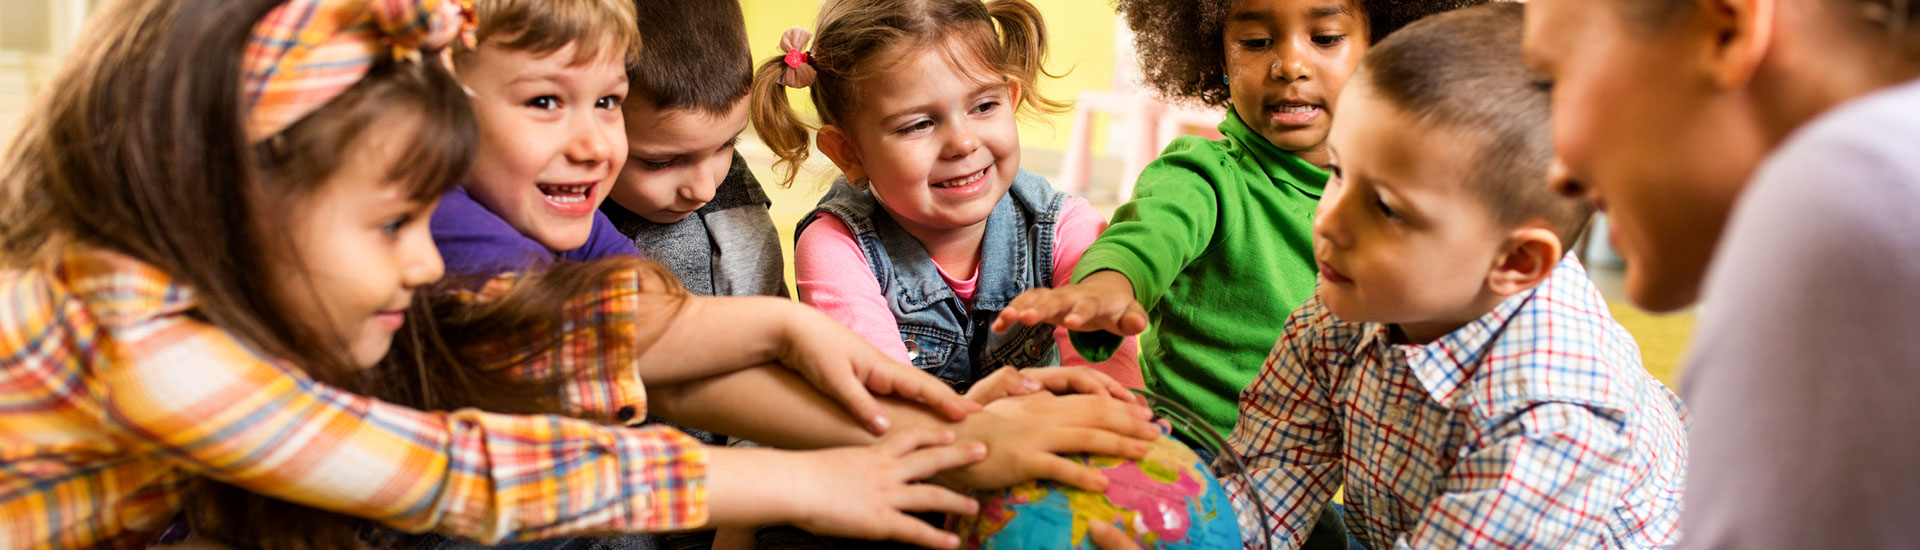 The ABCs of Safe and Healthy Child Care